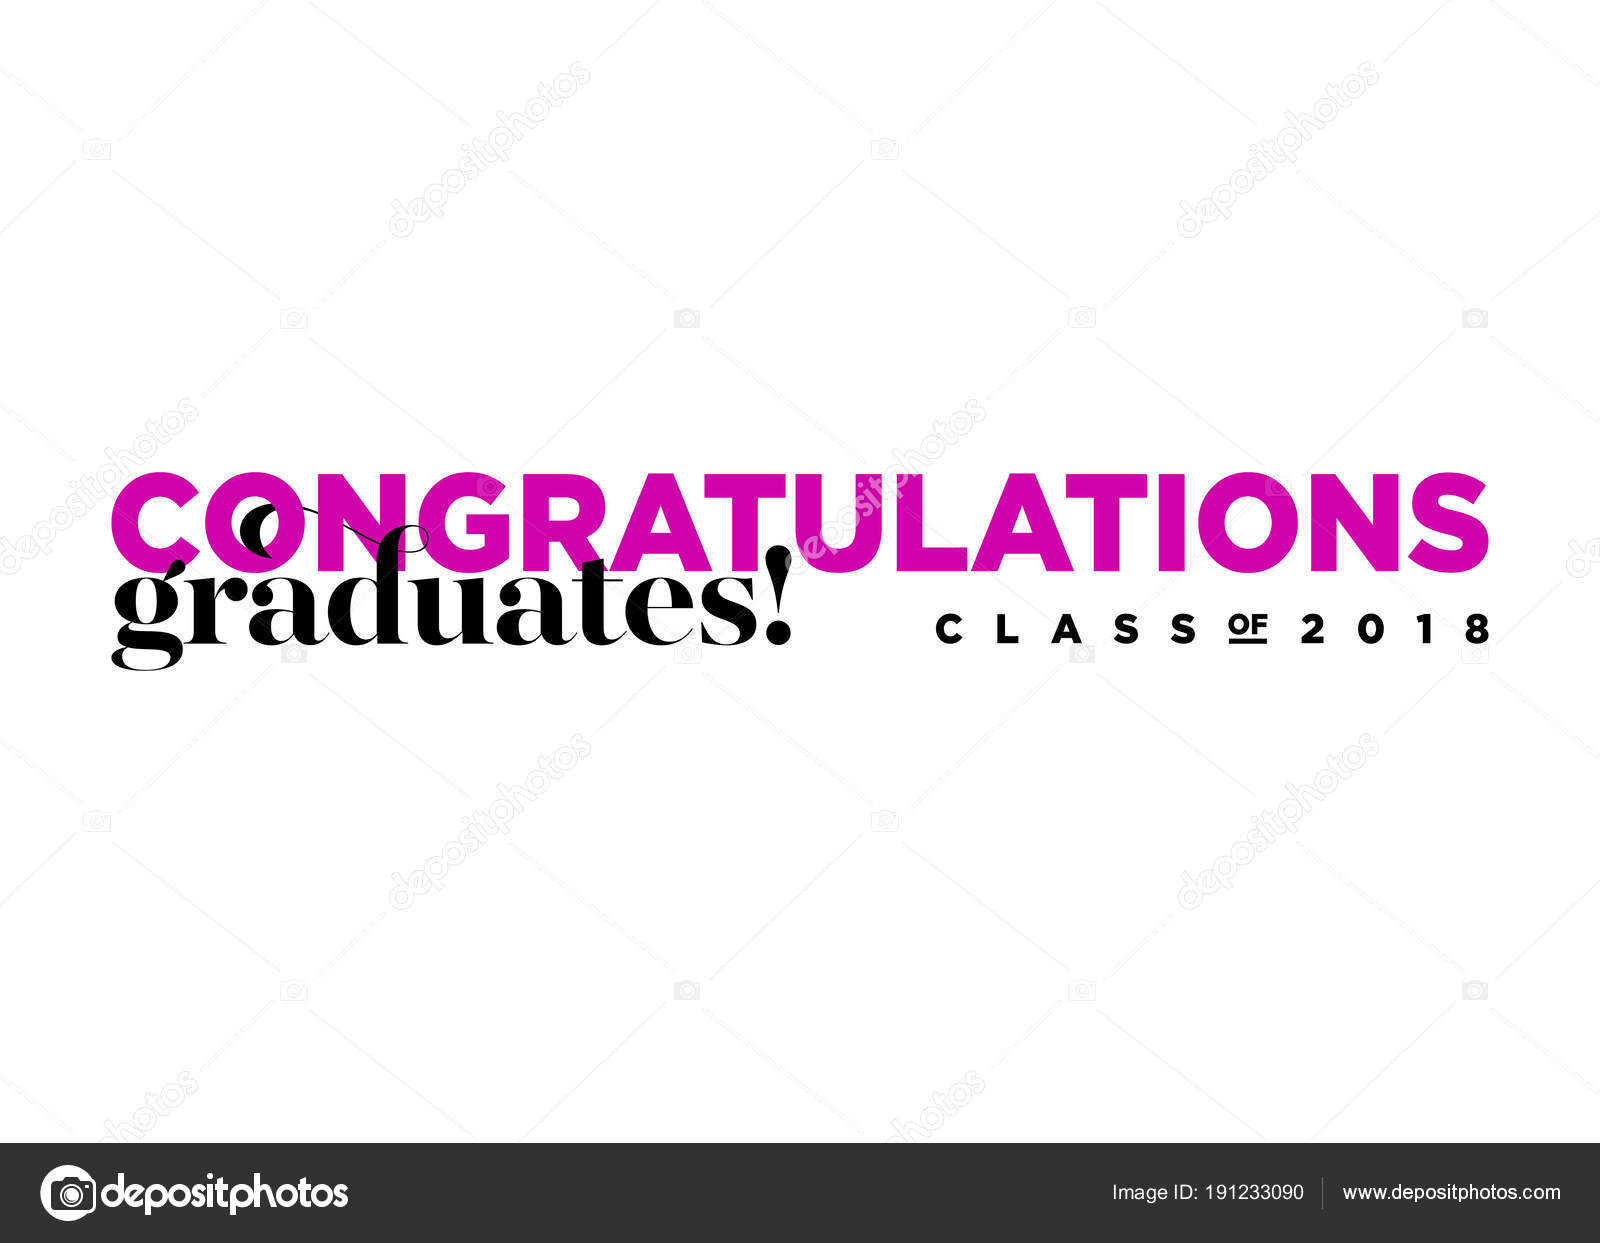 Congratulations Graduates Class Of 2018 Vector Logo Creative